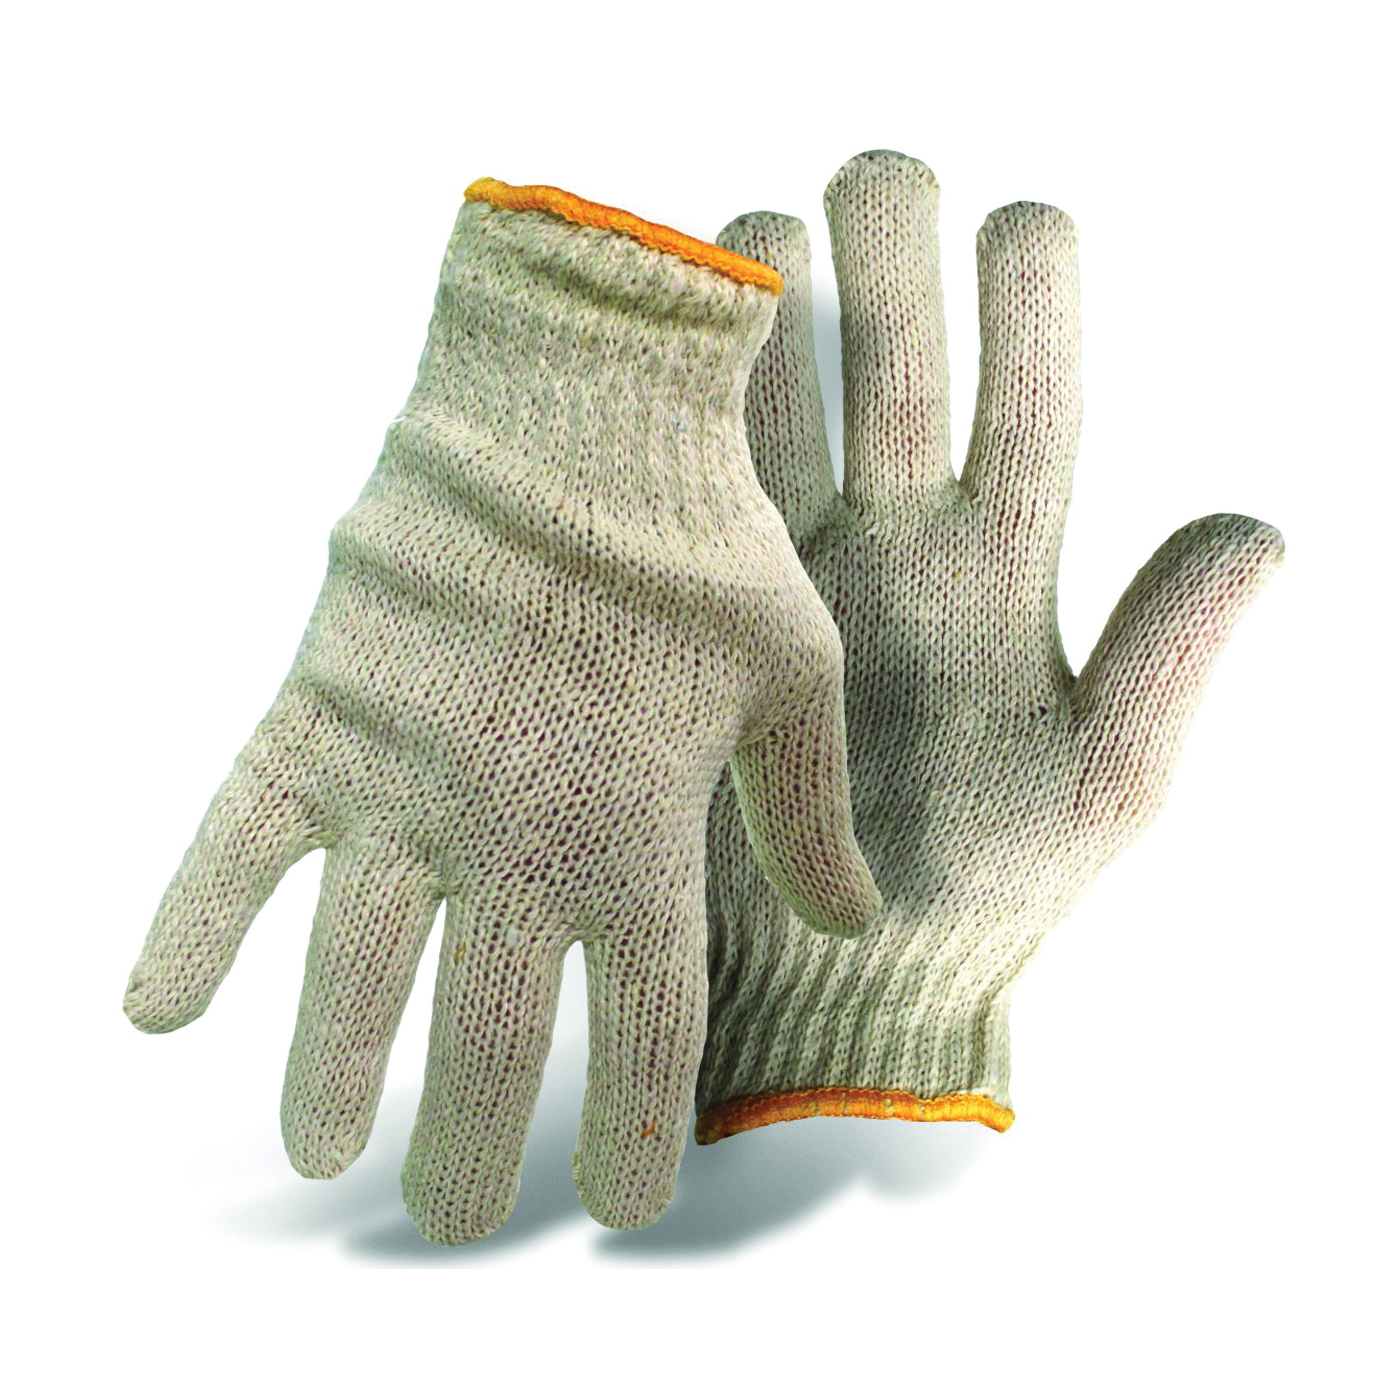 Picture of BOSS 1JC1203 Reversible Gloves, L, Knit Wrist Cuff, Cotton/Polyester